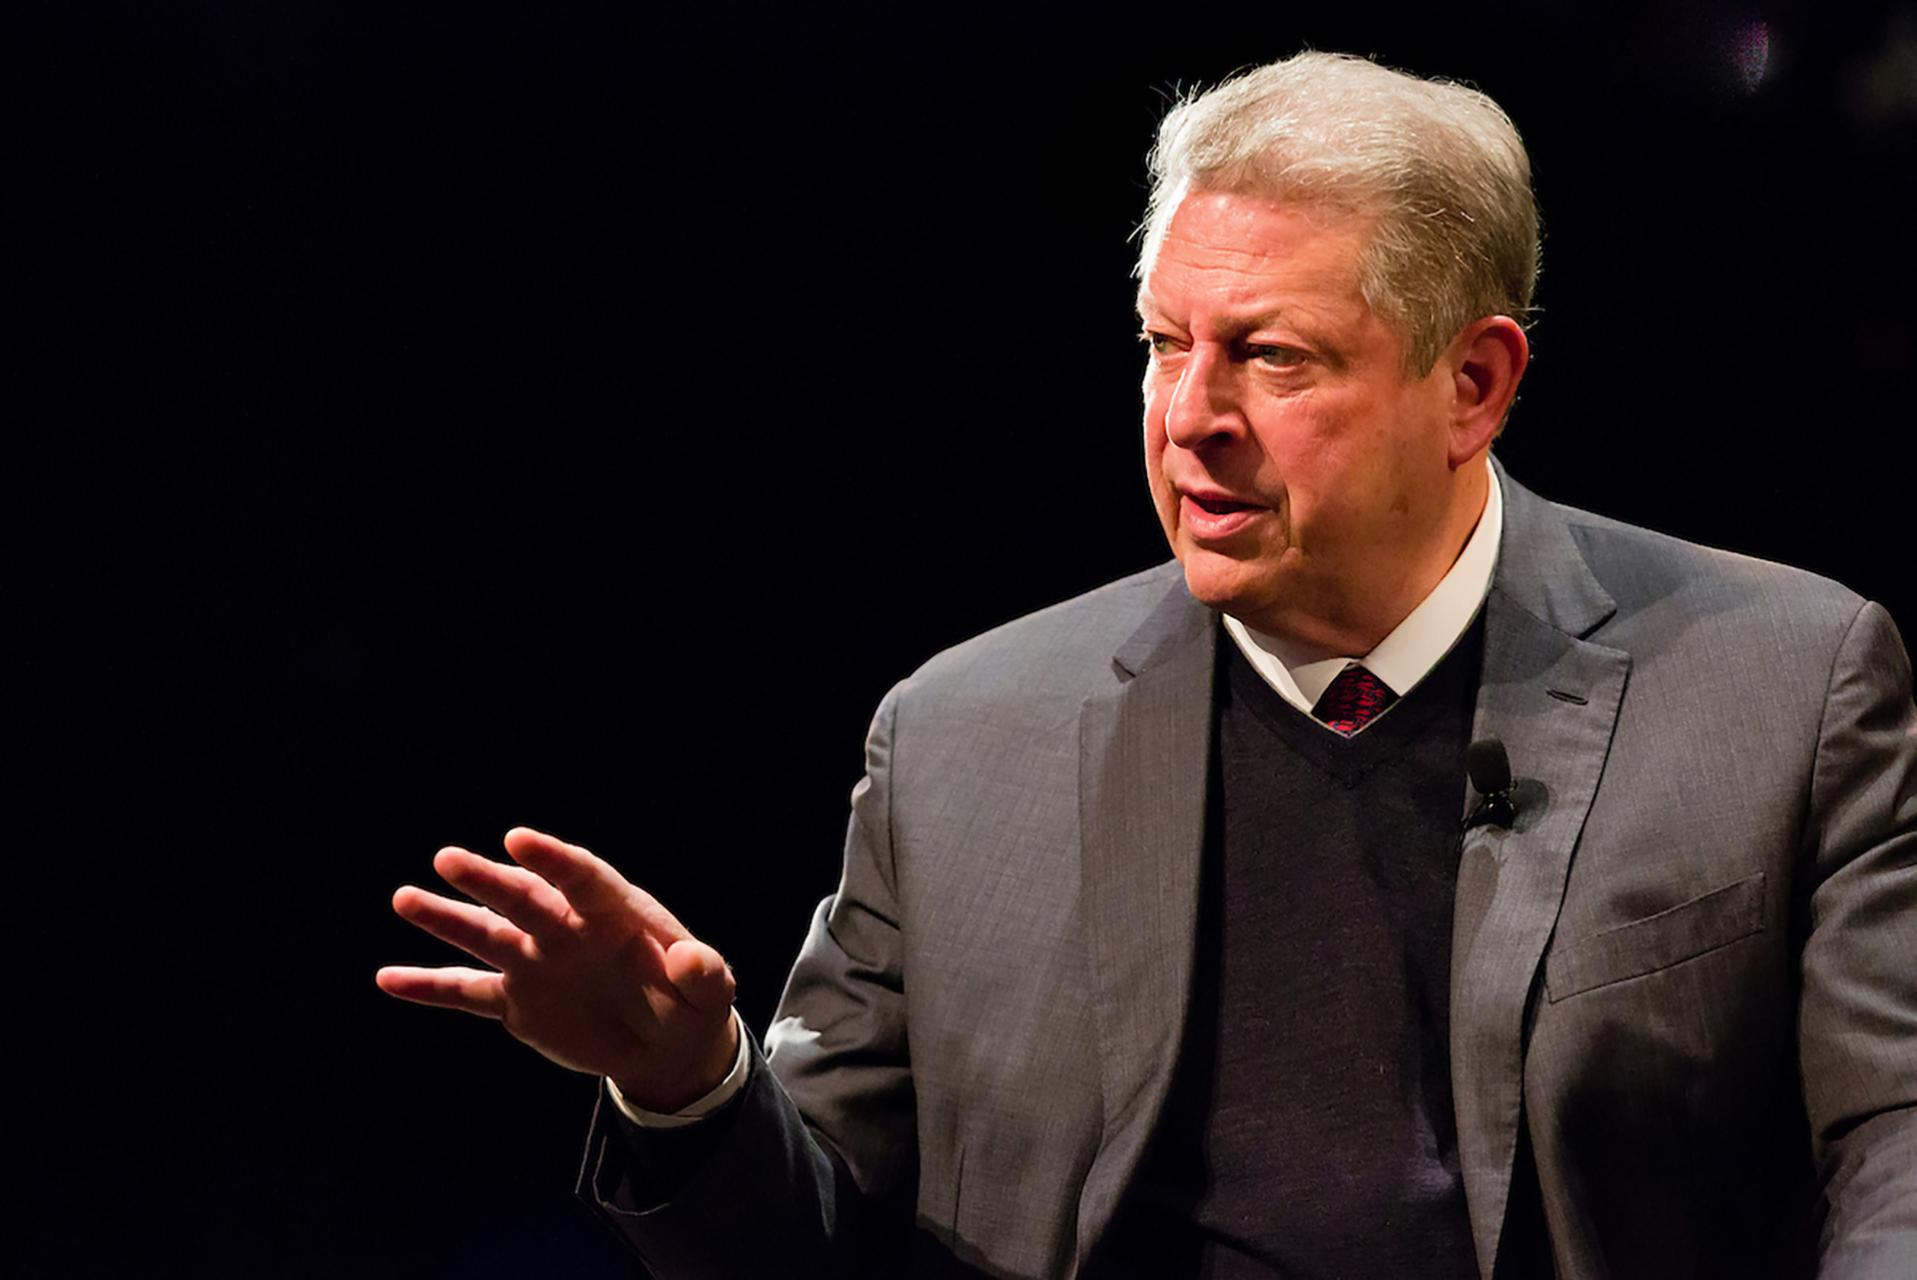 Al Gore at Tufts